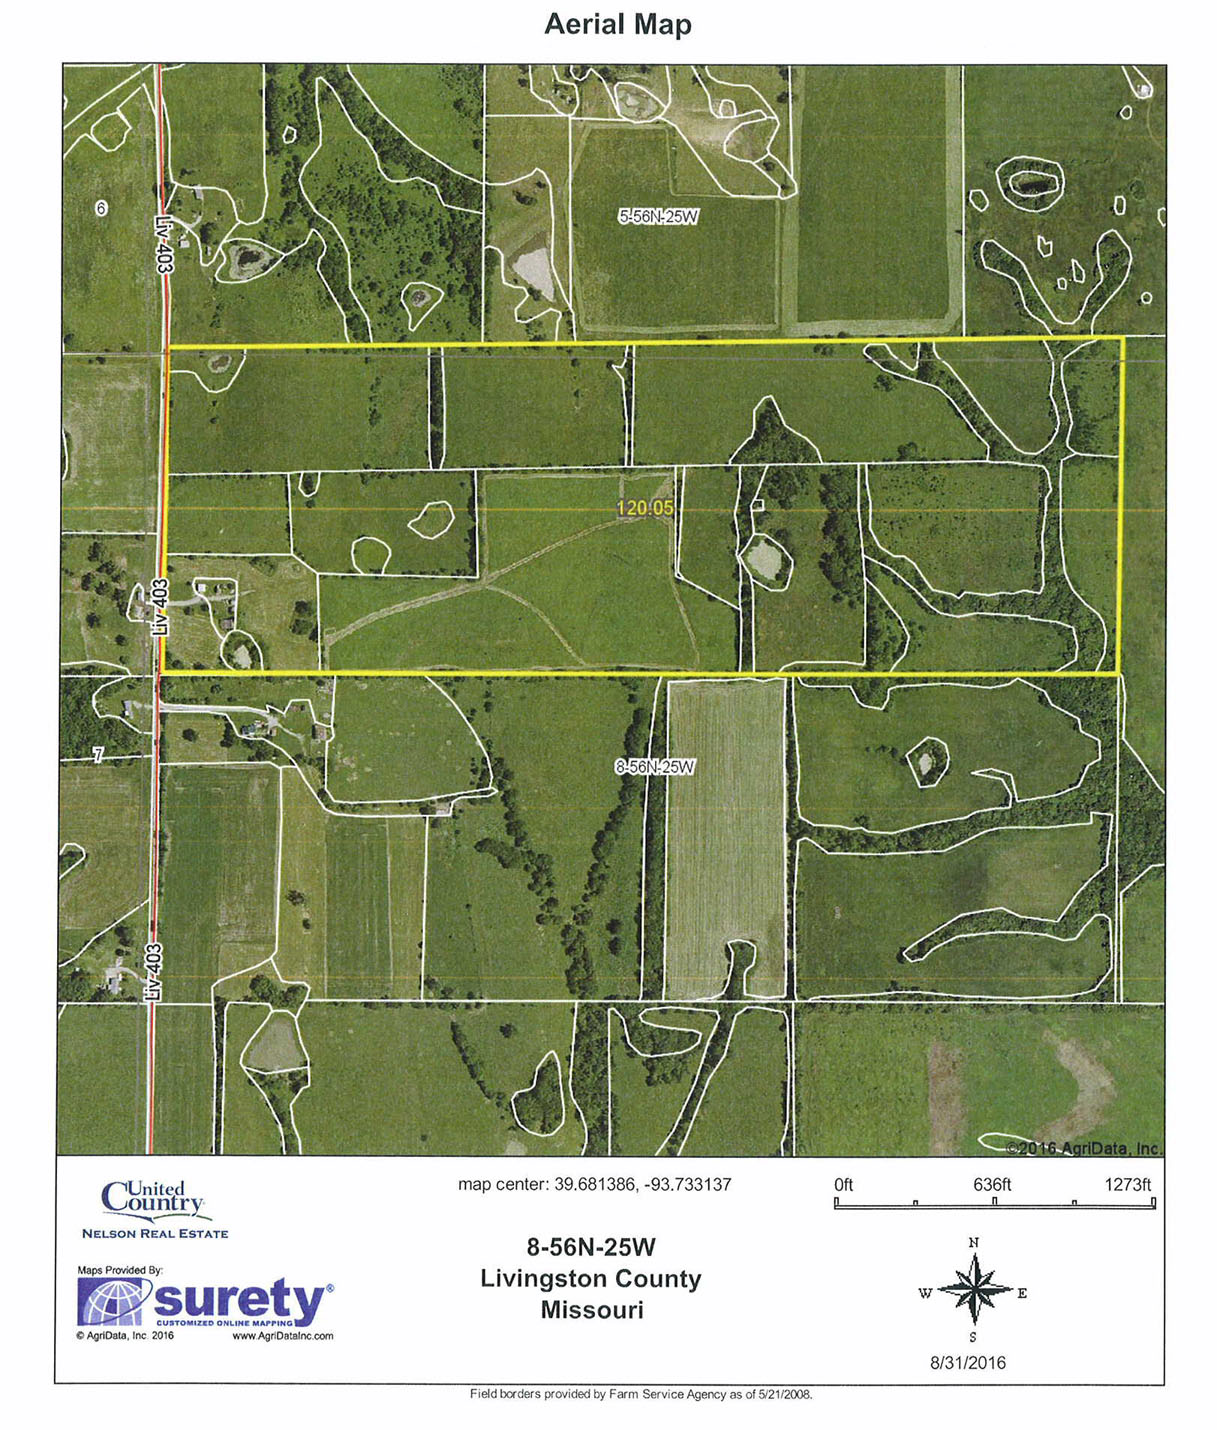 6676_aerial.jpg - 120 acres of Farm for sale. Rural, Ludlow, MO